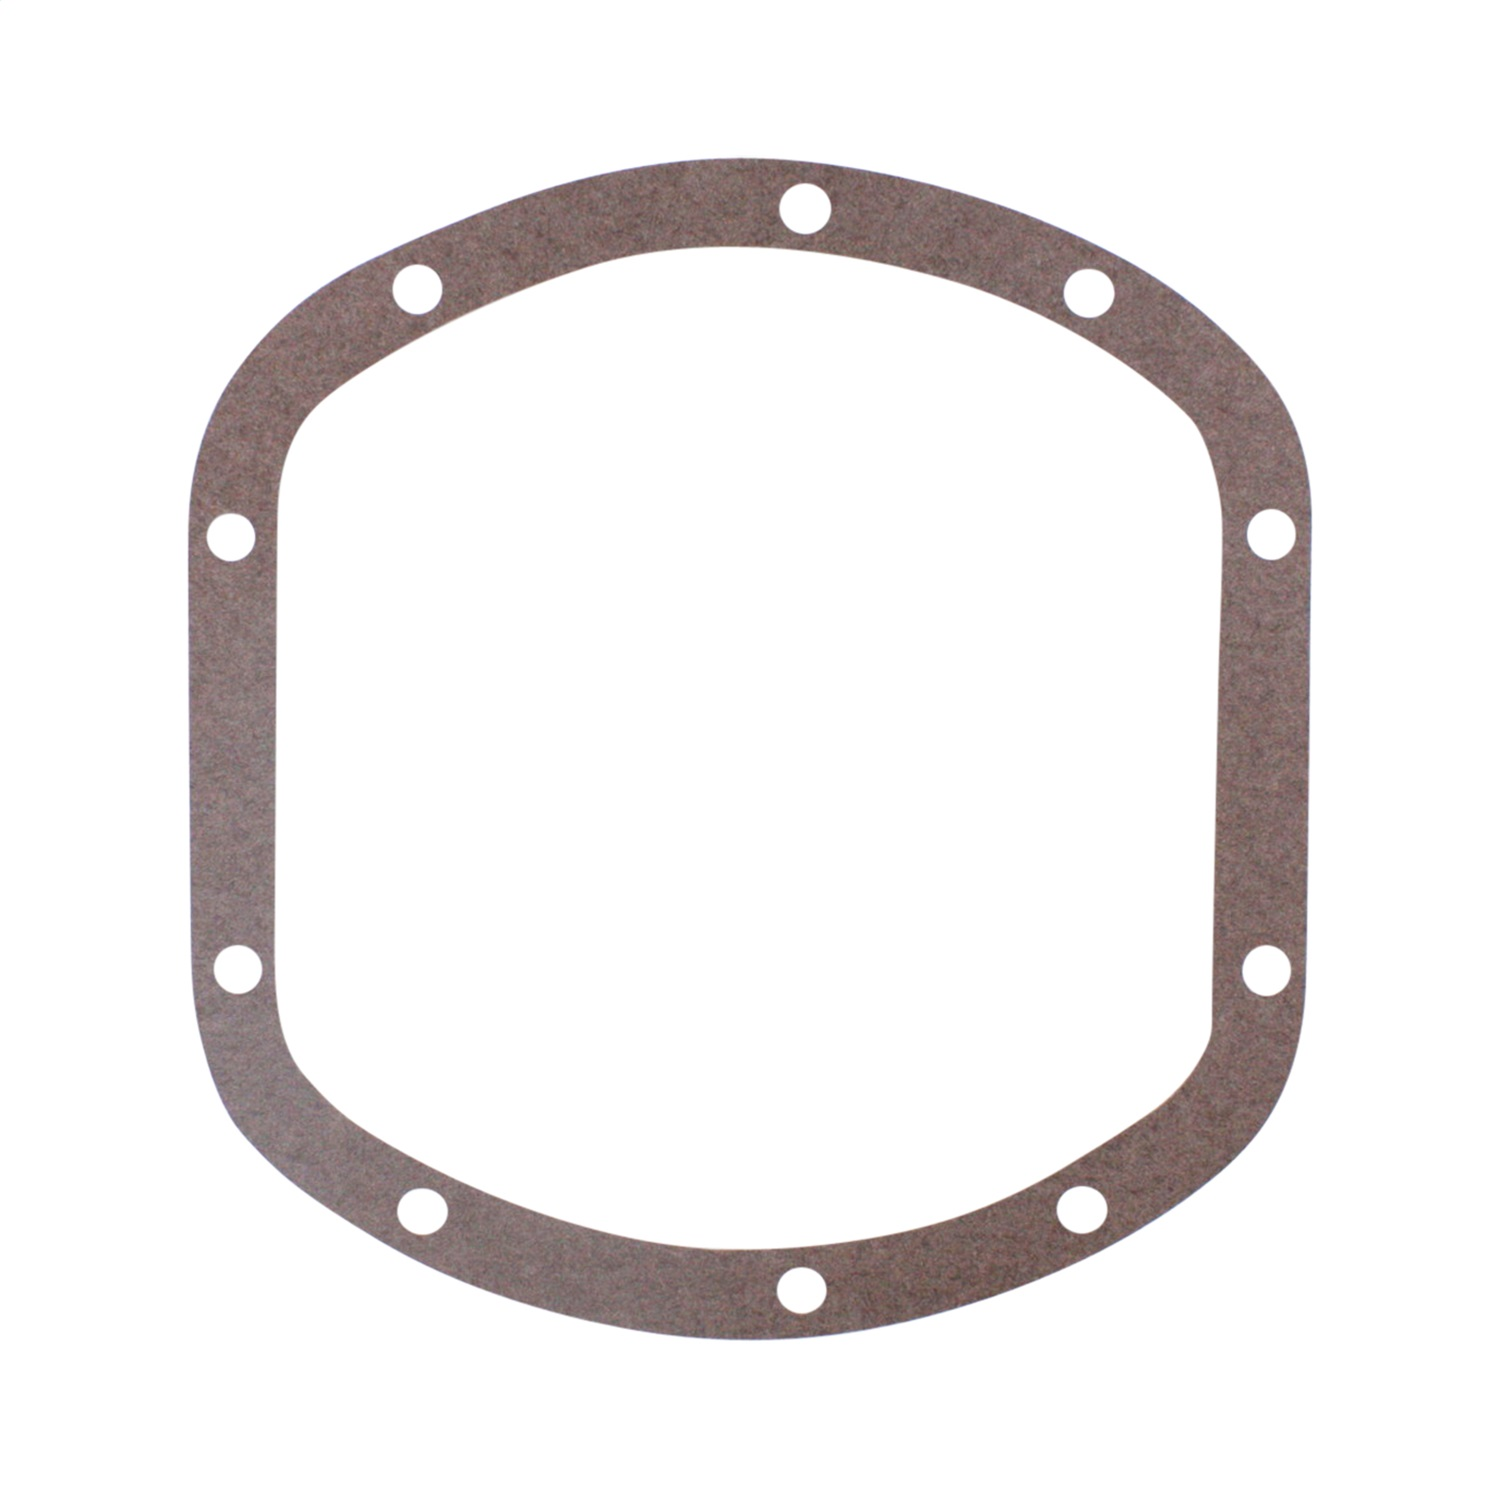 Yukon Gear & Axle YCGD30 Differential Cover Gasket